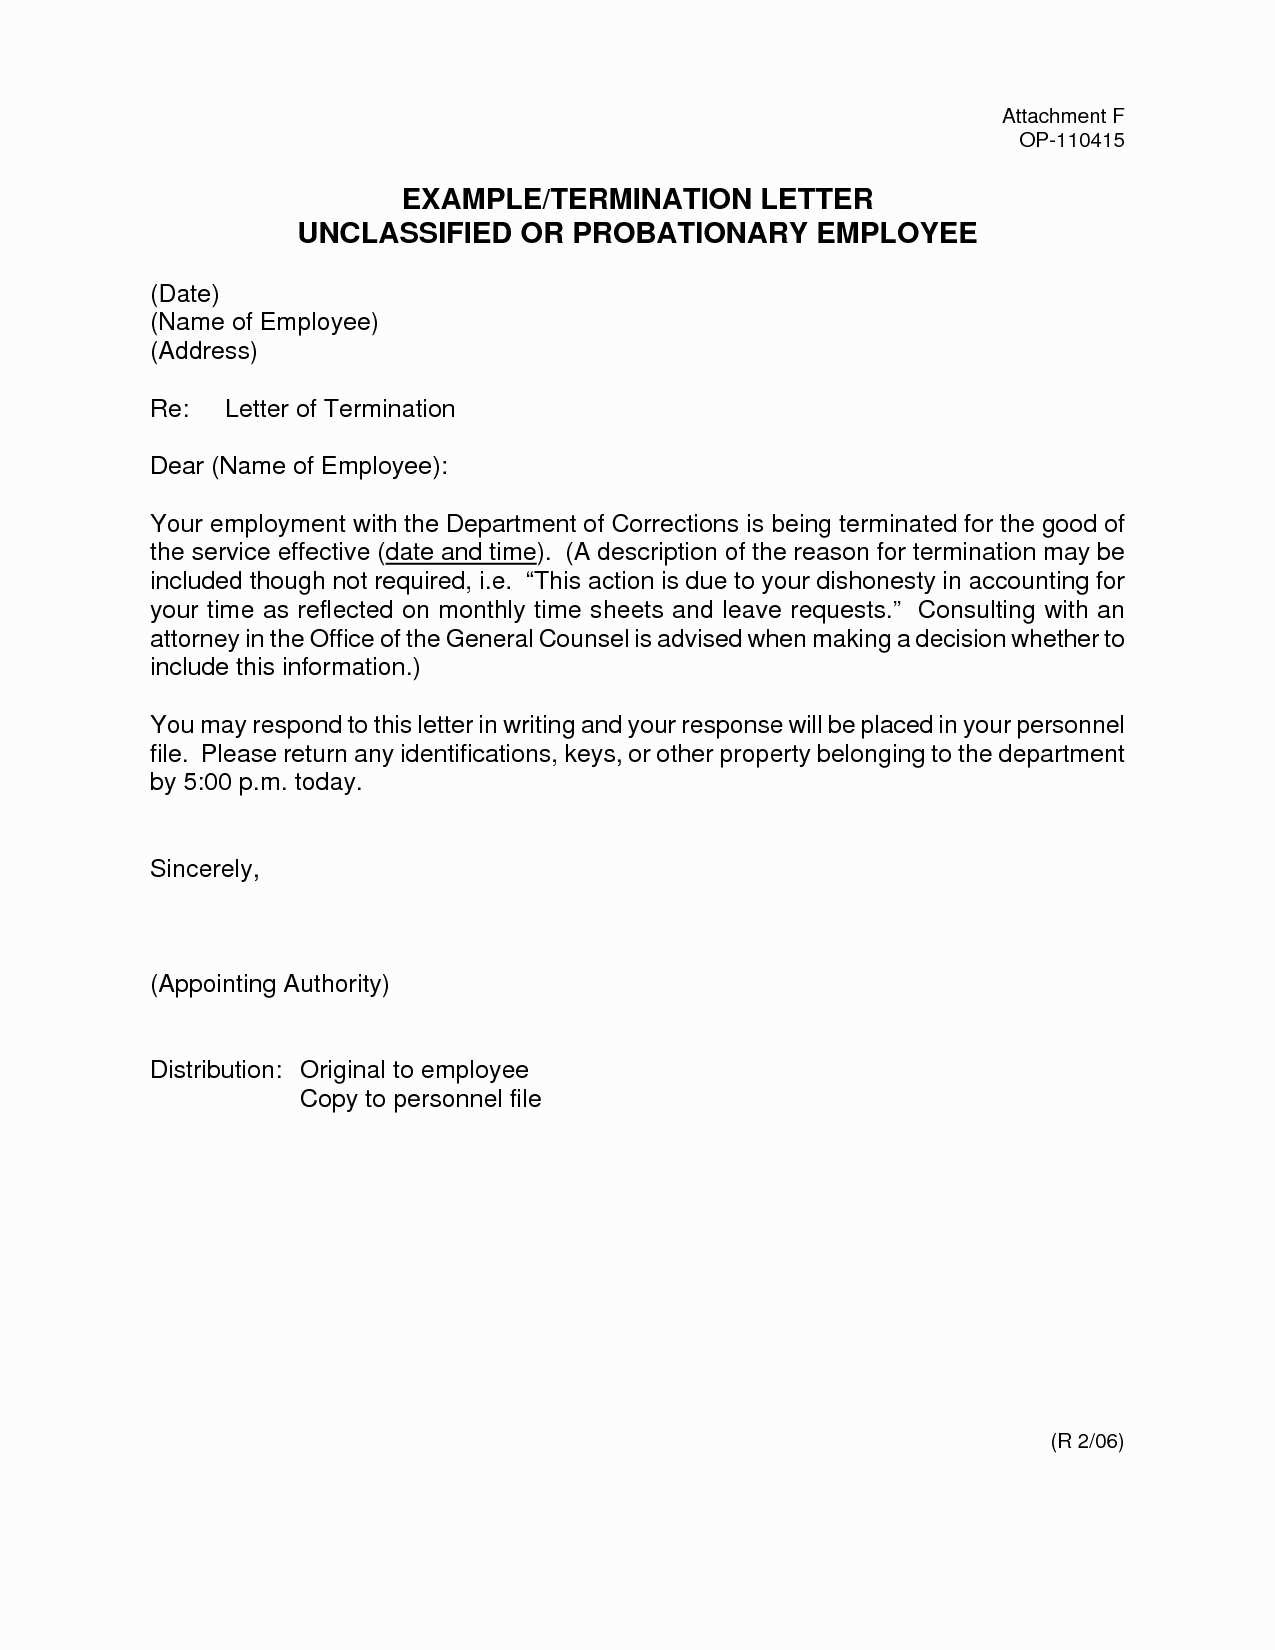 Generic Termination Letter Sample Employee Termination Letter Template Samples Letter Cover